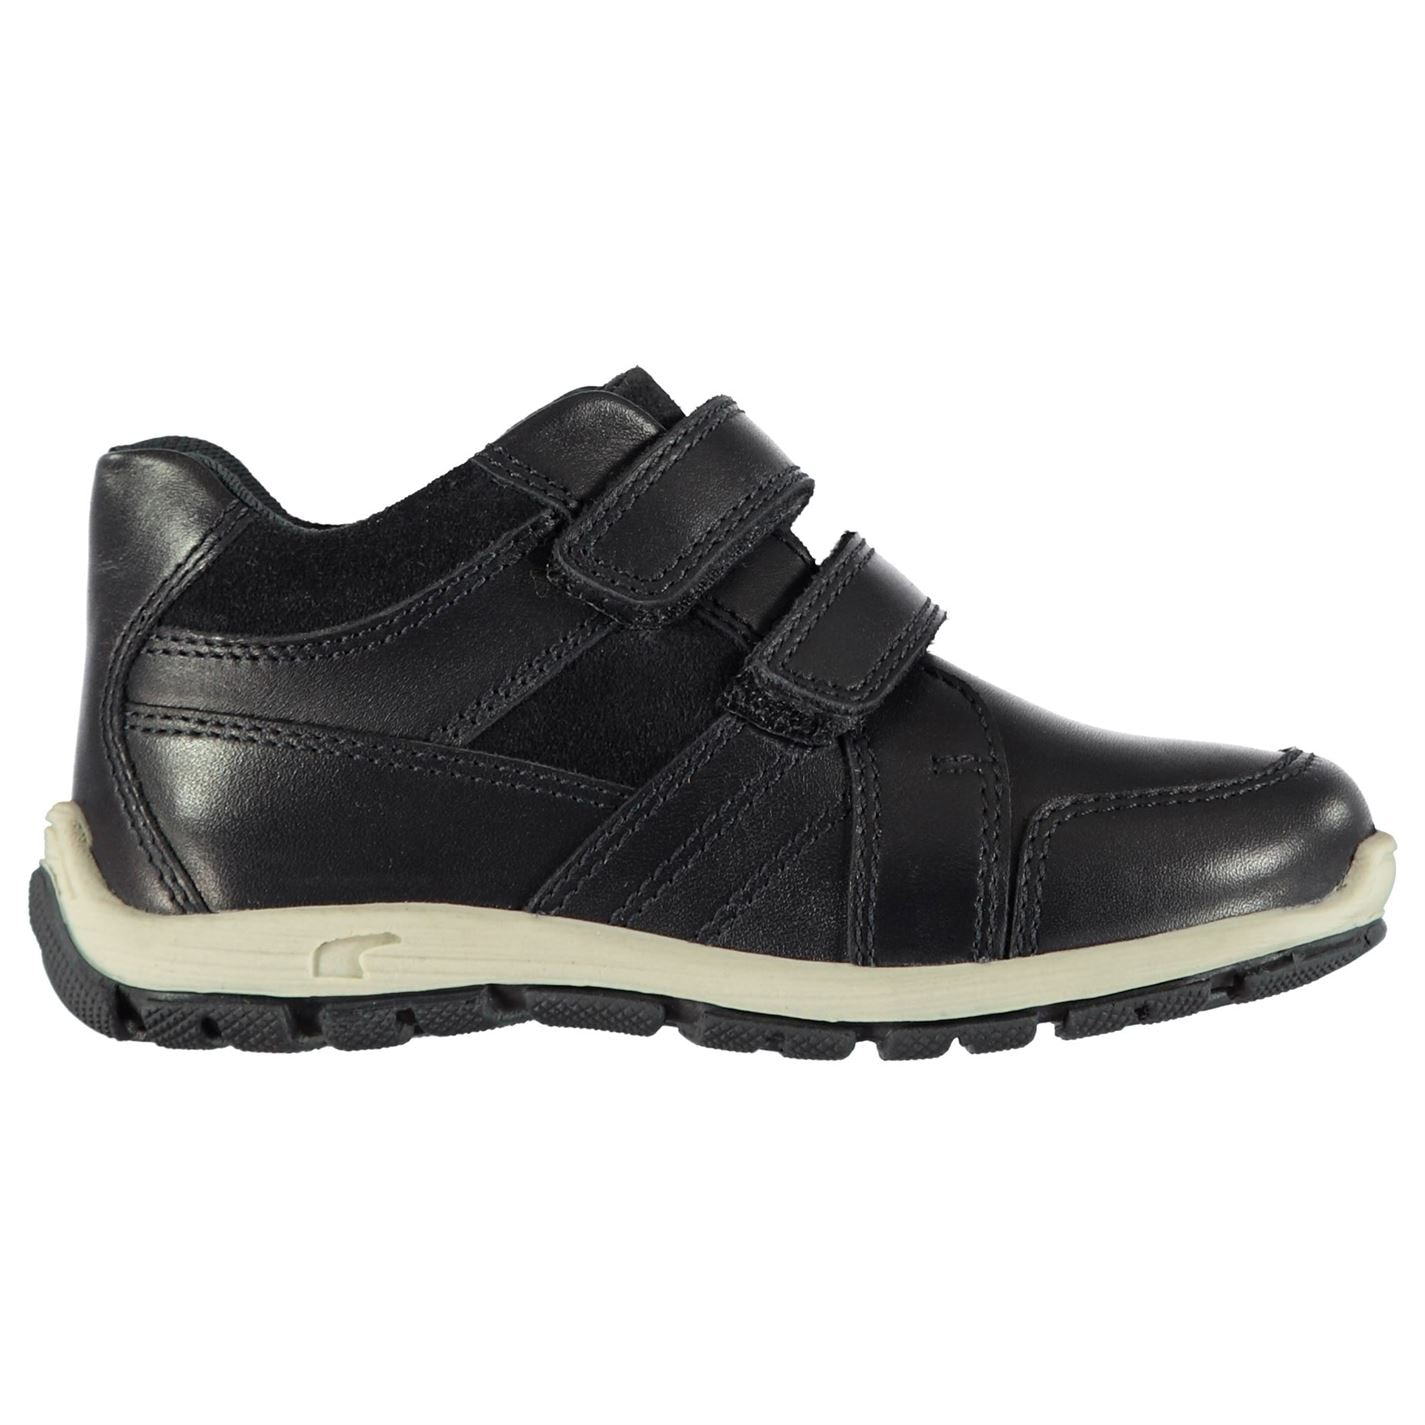 Firetrap Cooper Ankley Boots Navy